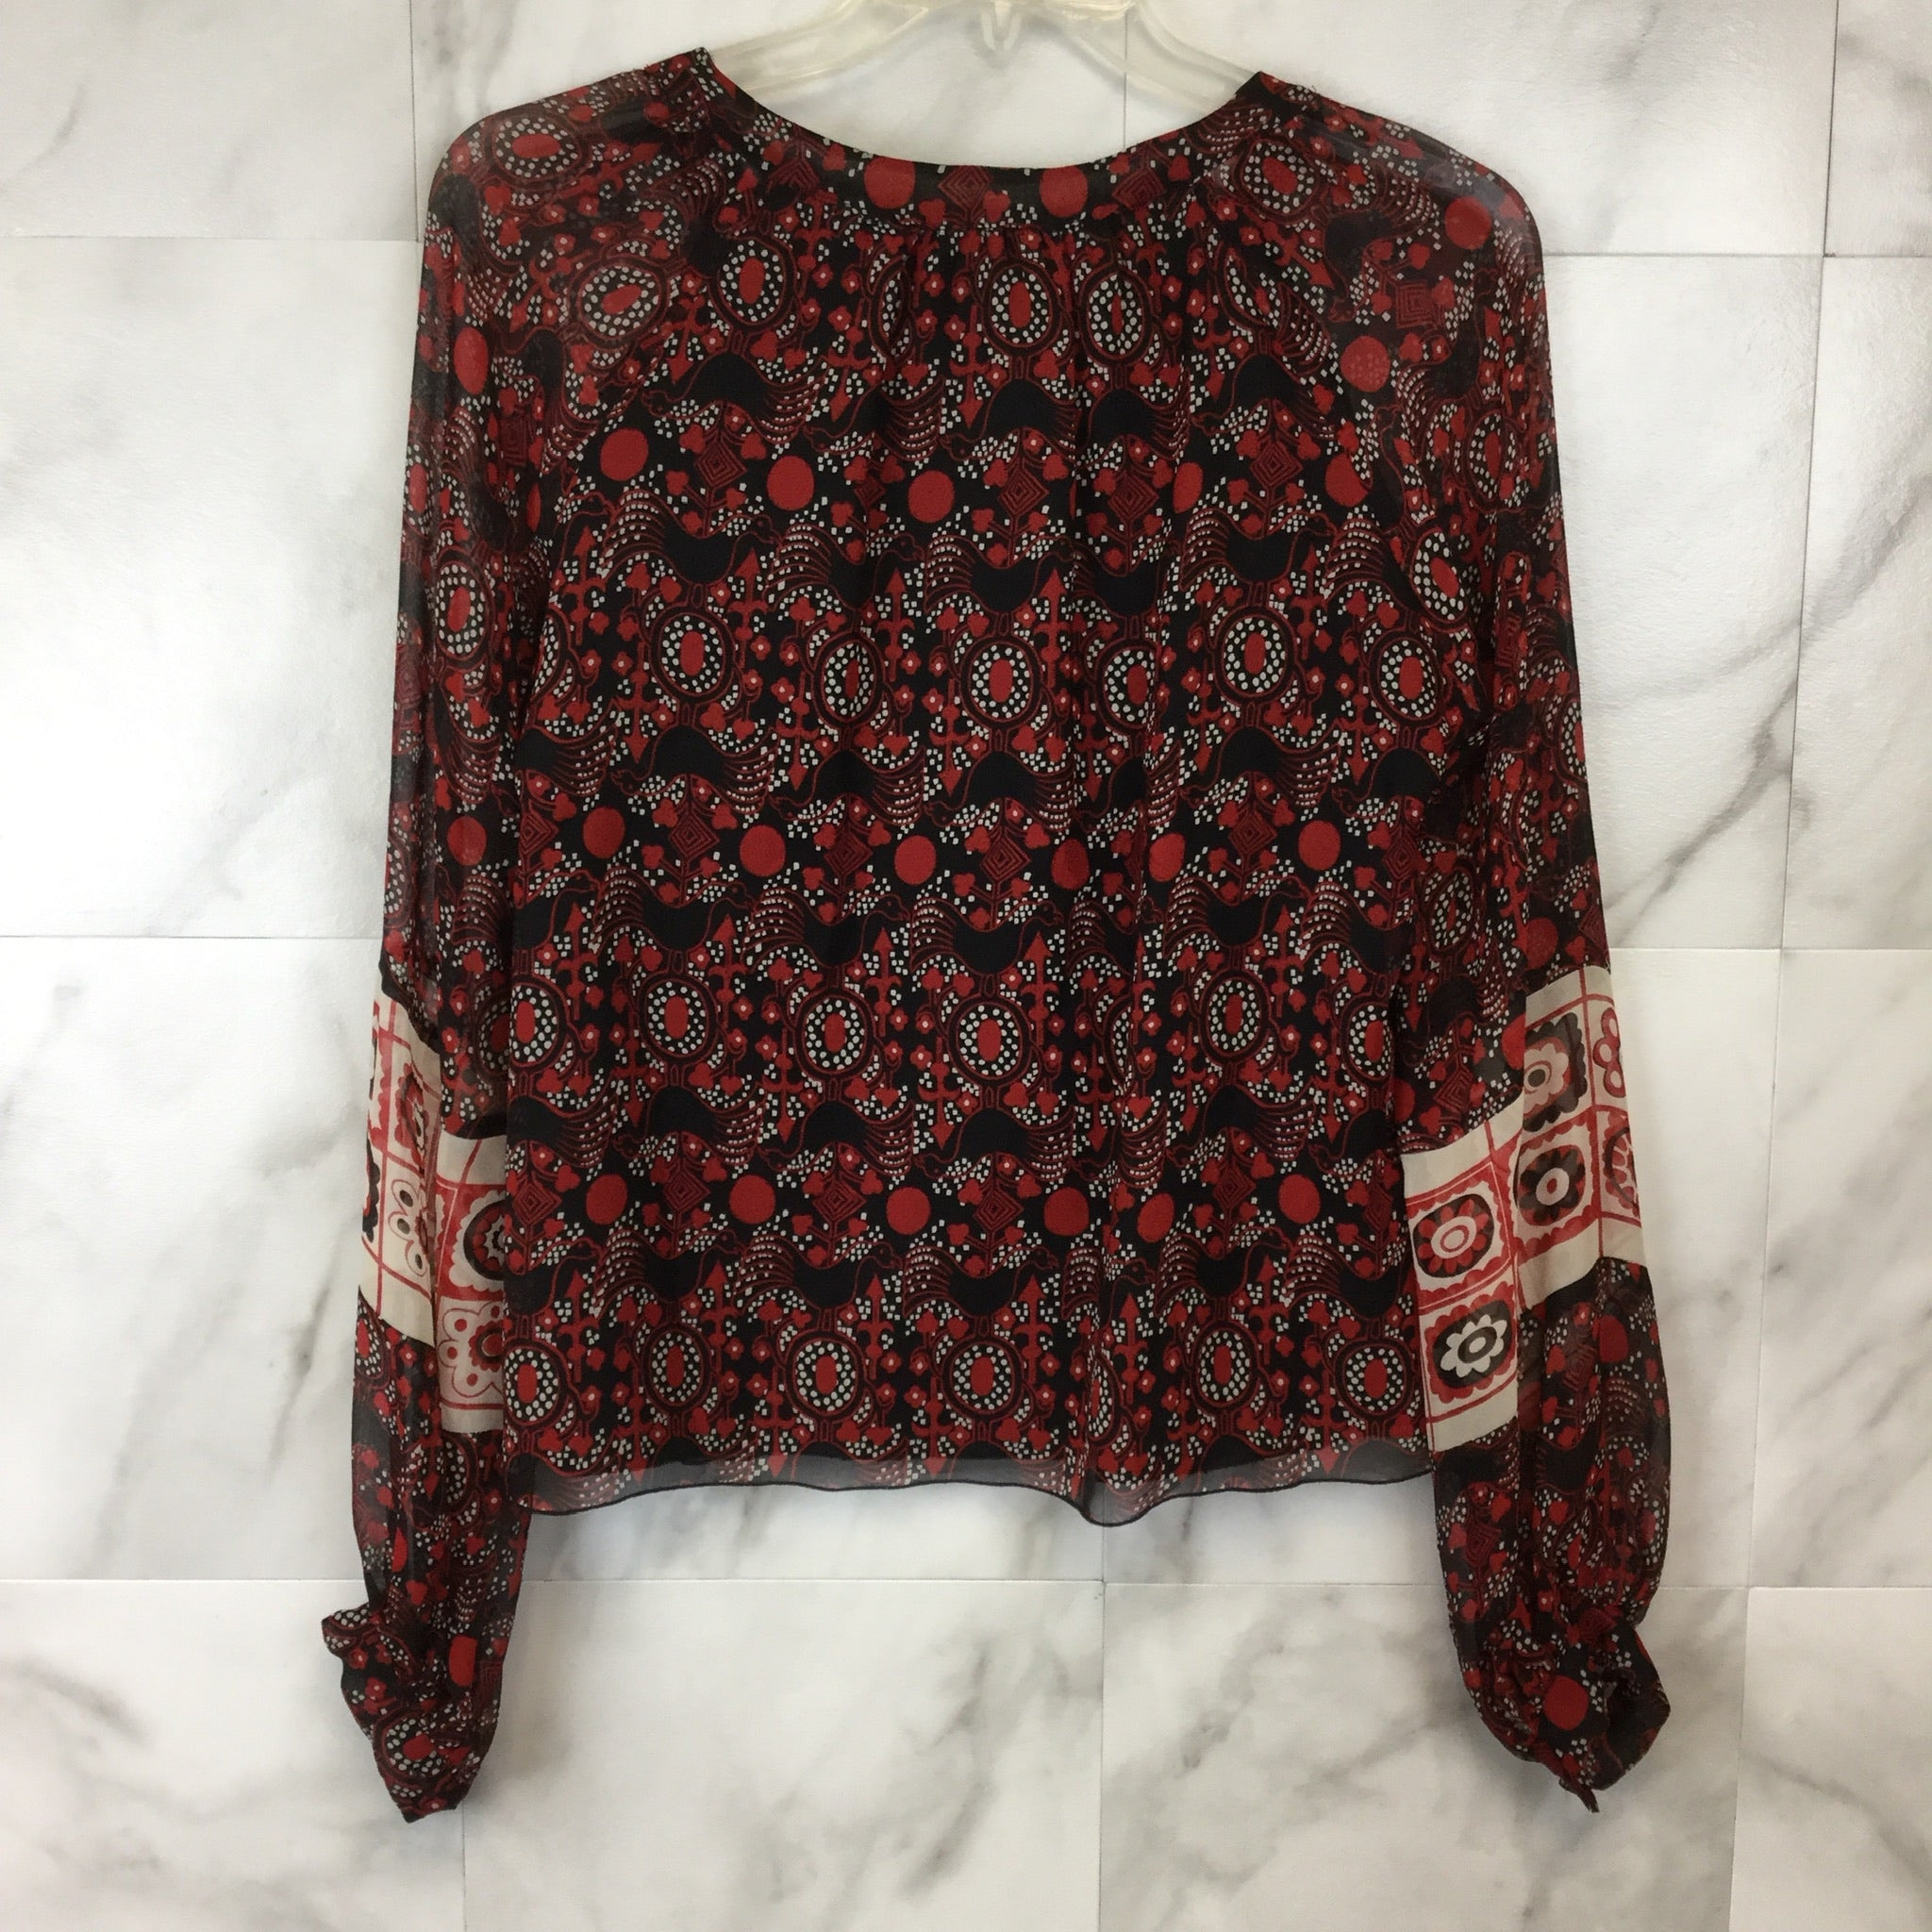 Anna Sui Patterned Silk Blouse - 8